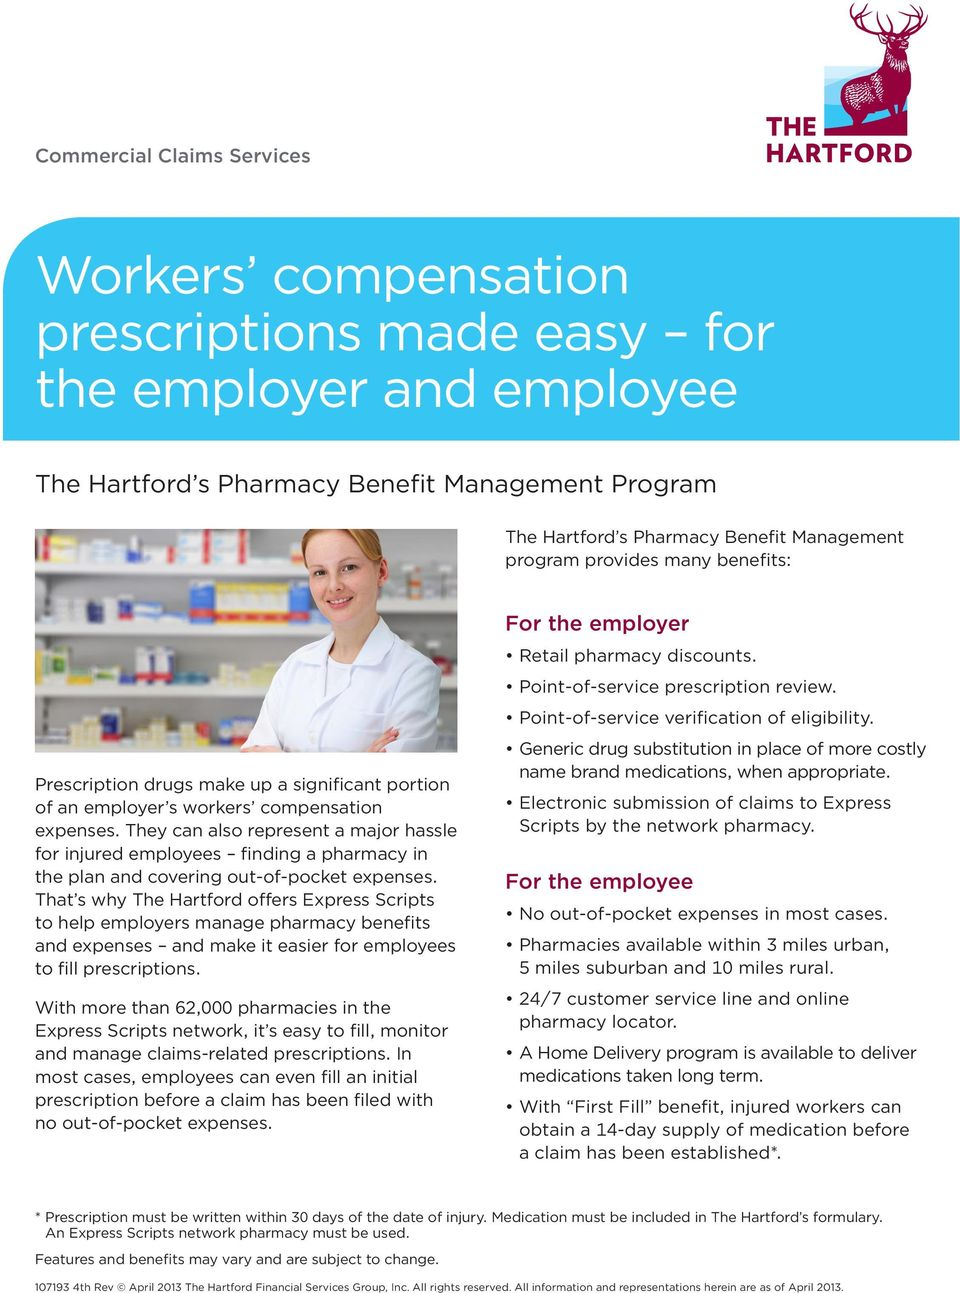 They can also represent a major hassle for injured employees finding a pharmacy in the plan and covering out-of-pocket expenses.